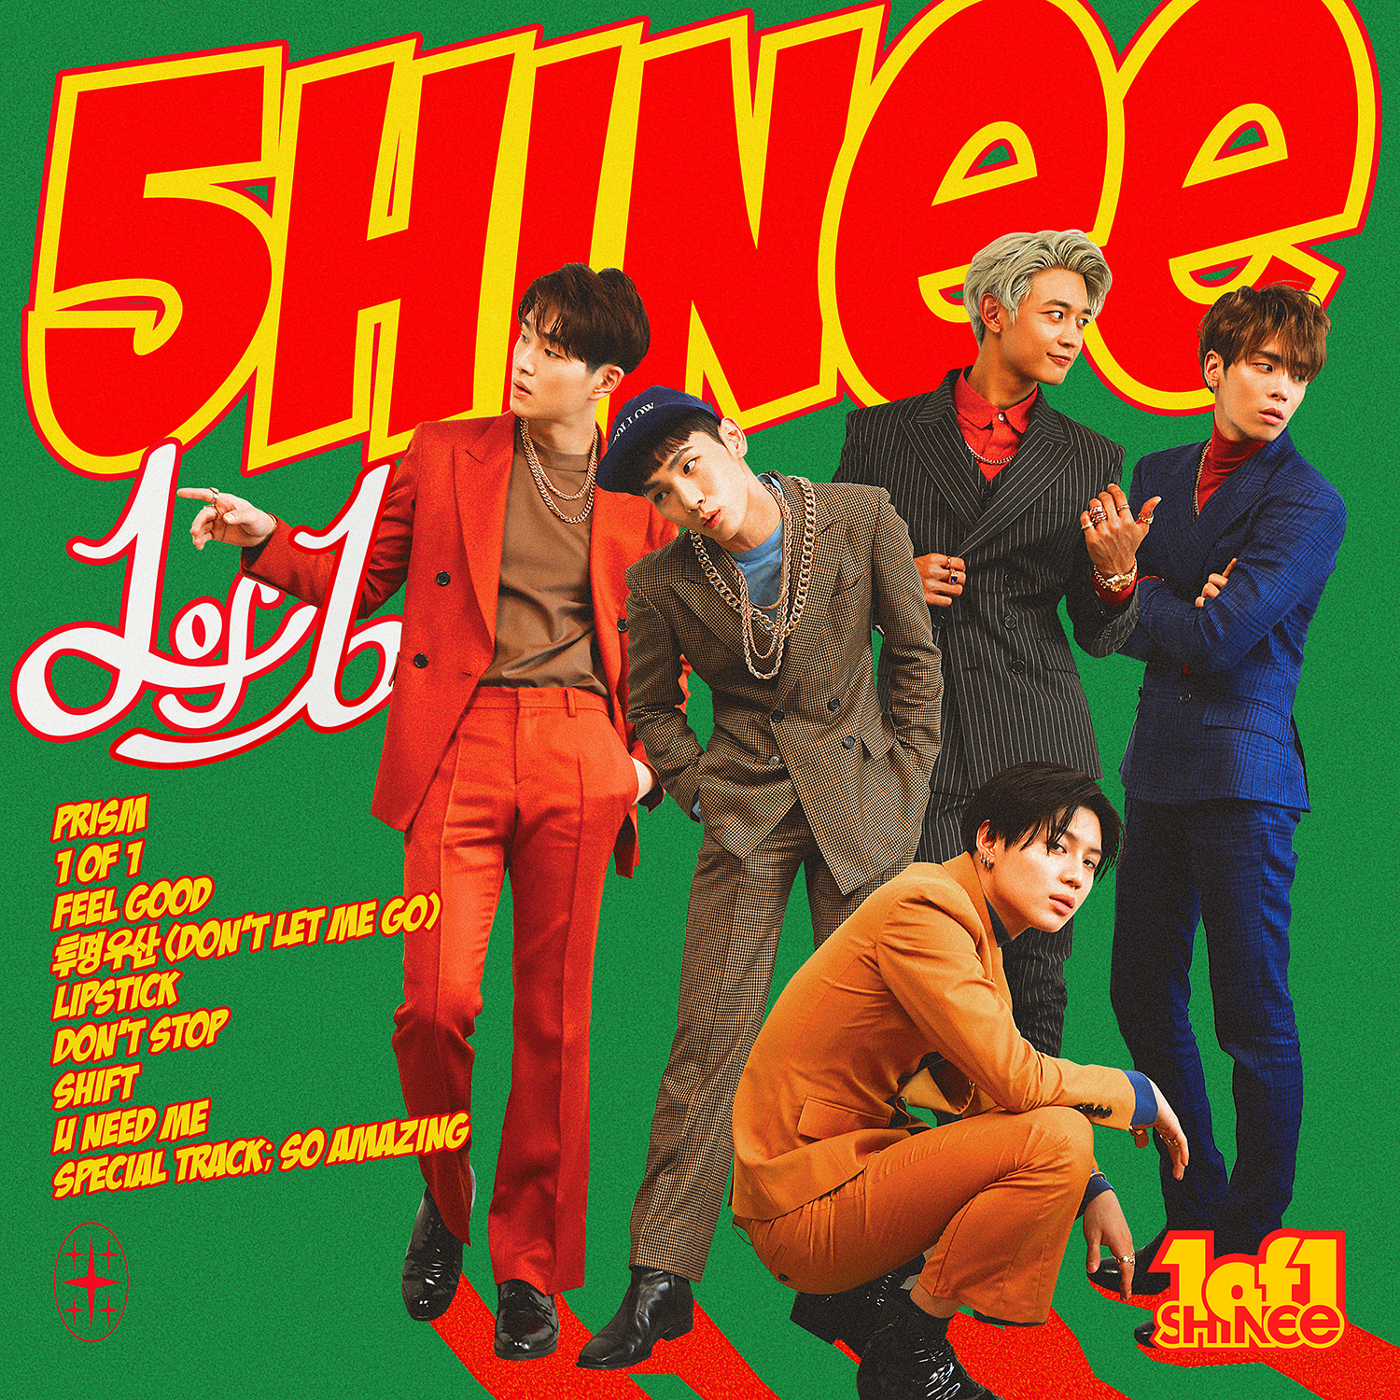 SHINee 1 of 1 cover art.png